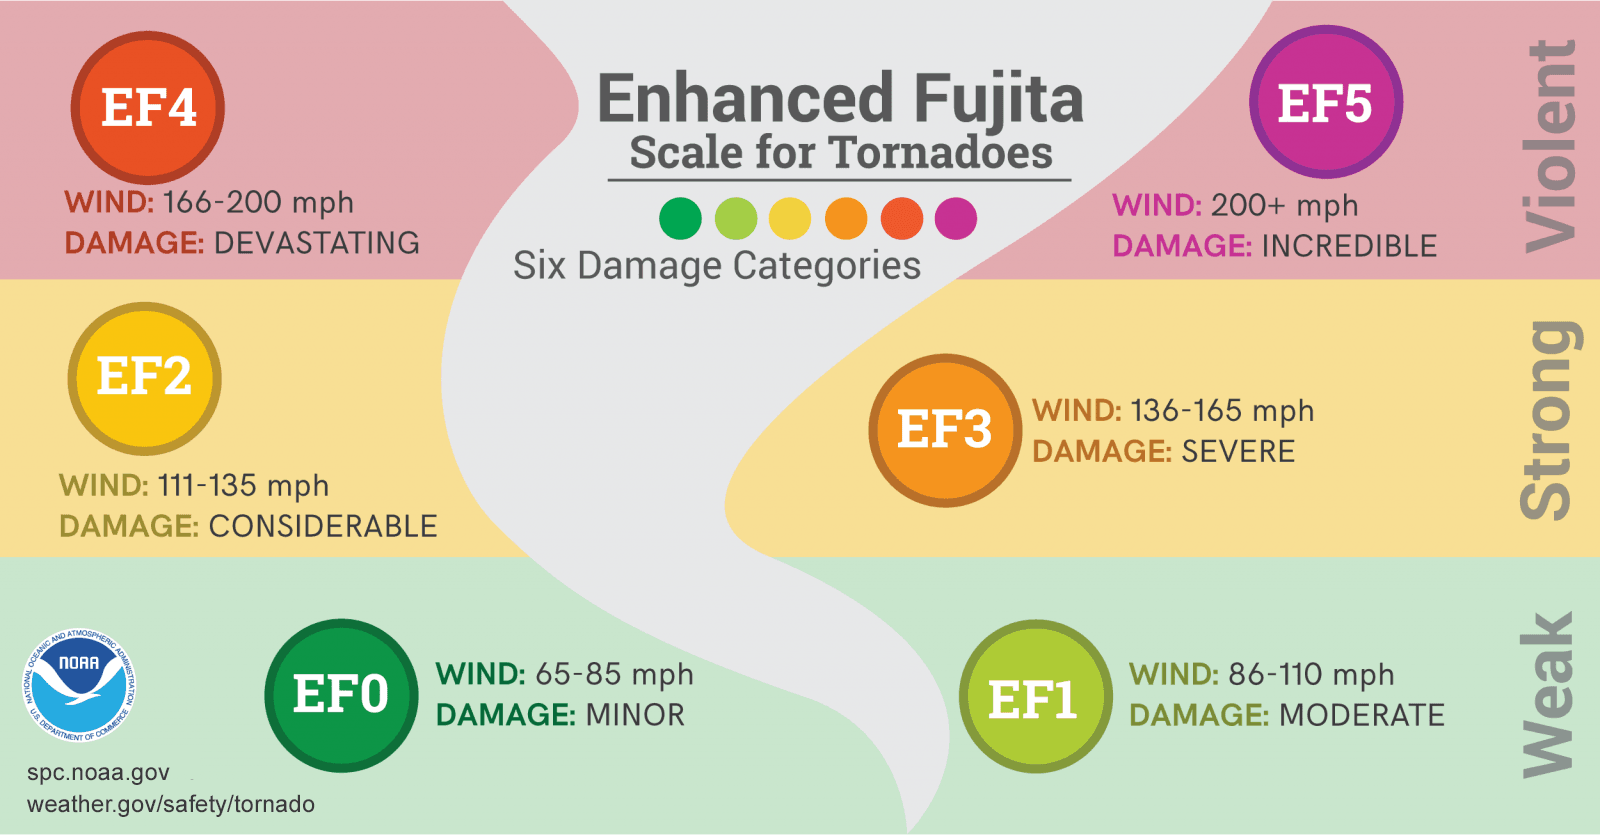 EF_Scale